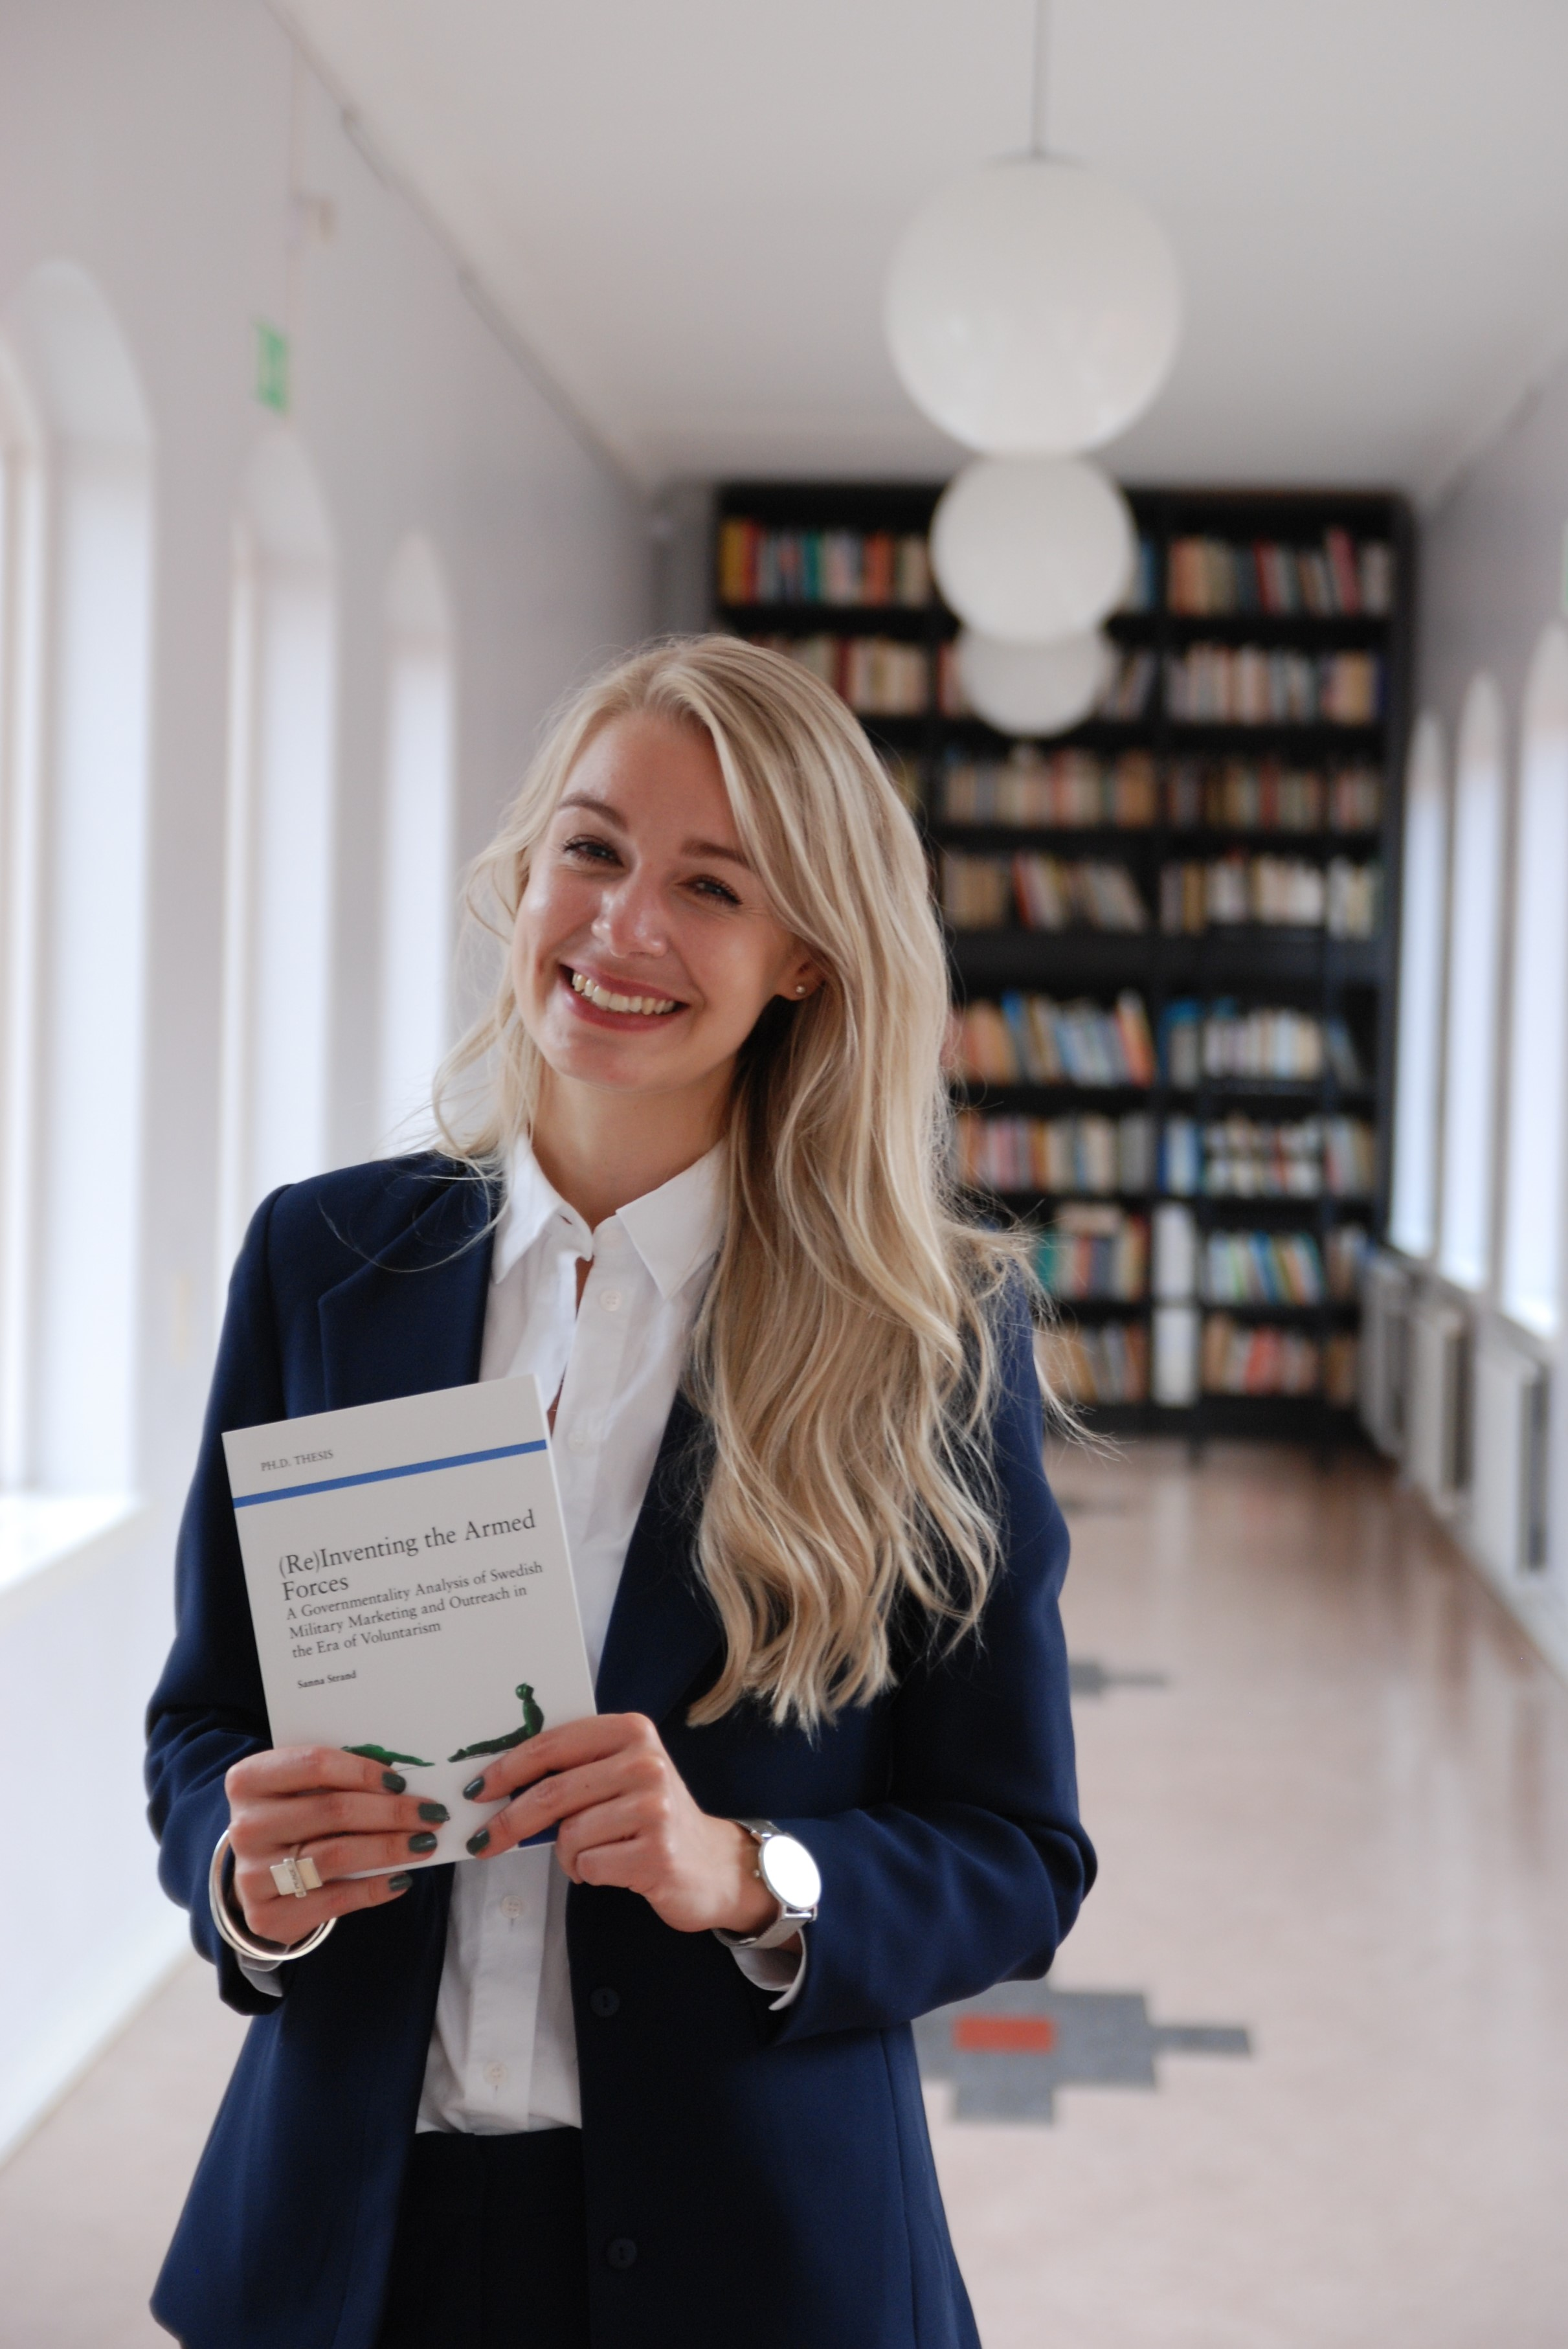 Sanna Strand with her PhD thesis (Re)Inventing the Armed Forces: A Governmentality Analysis of Swedish Military Marketing and Outreach in the Era of Voluntarism.